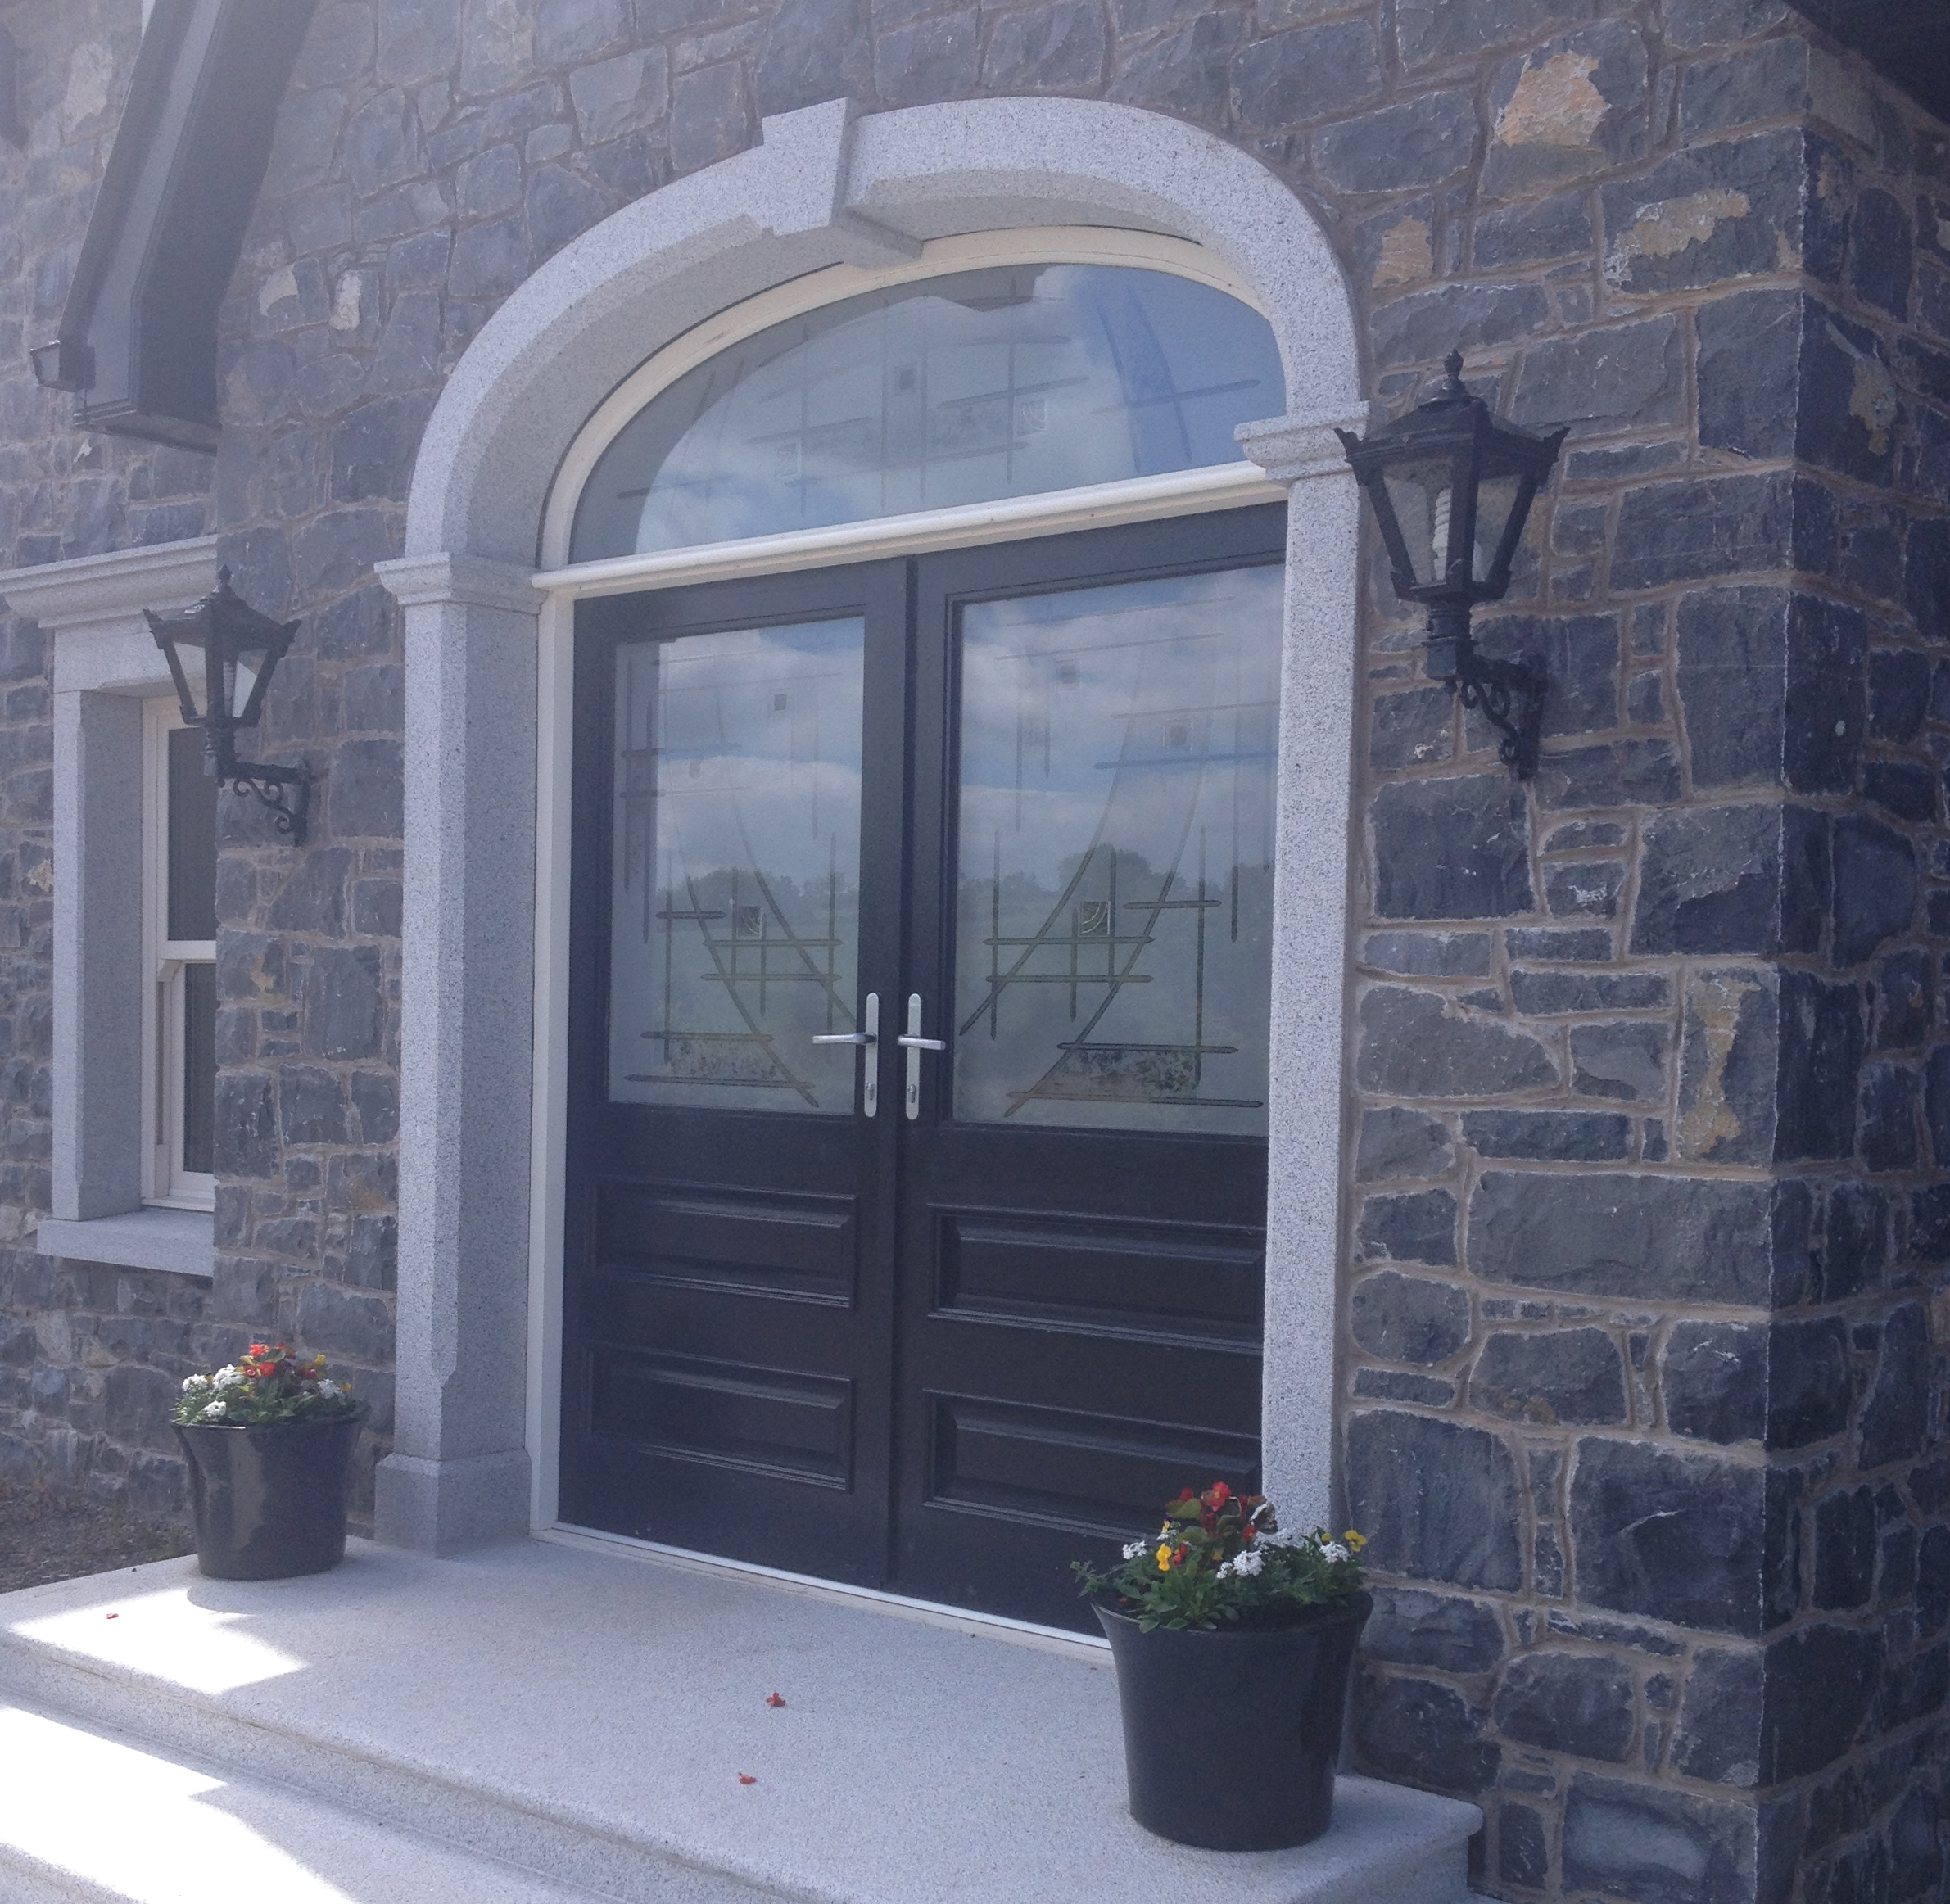 Mesmerizing Front Door Surround Stone Images - Image design house ...